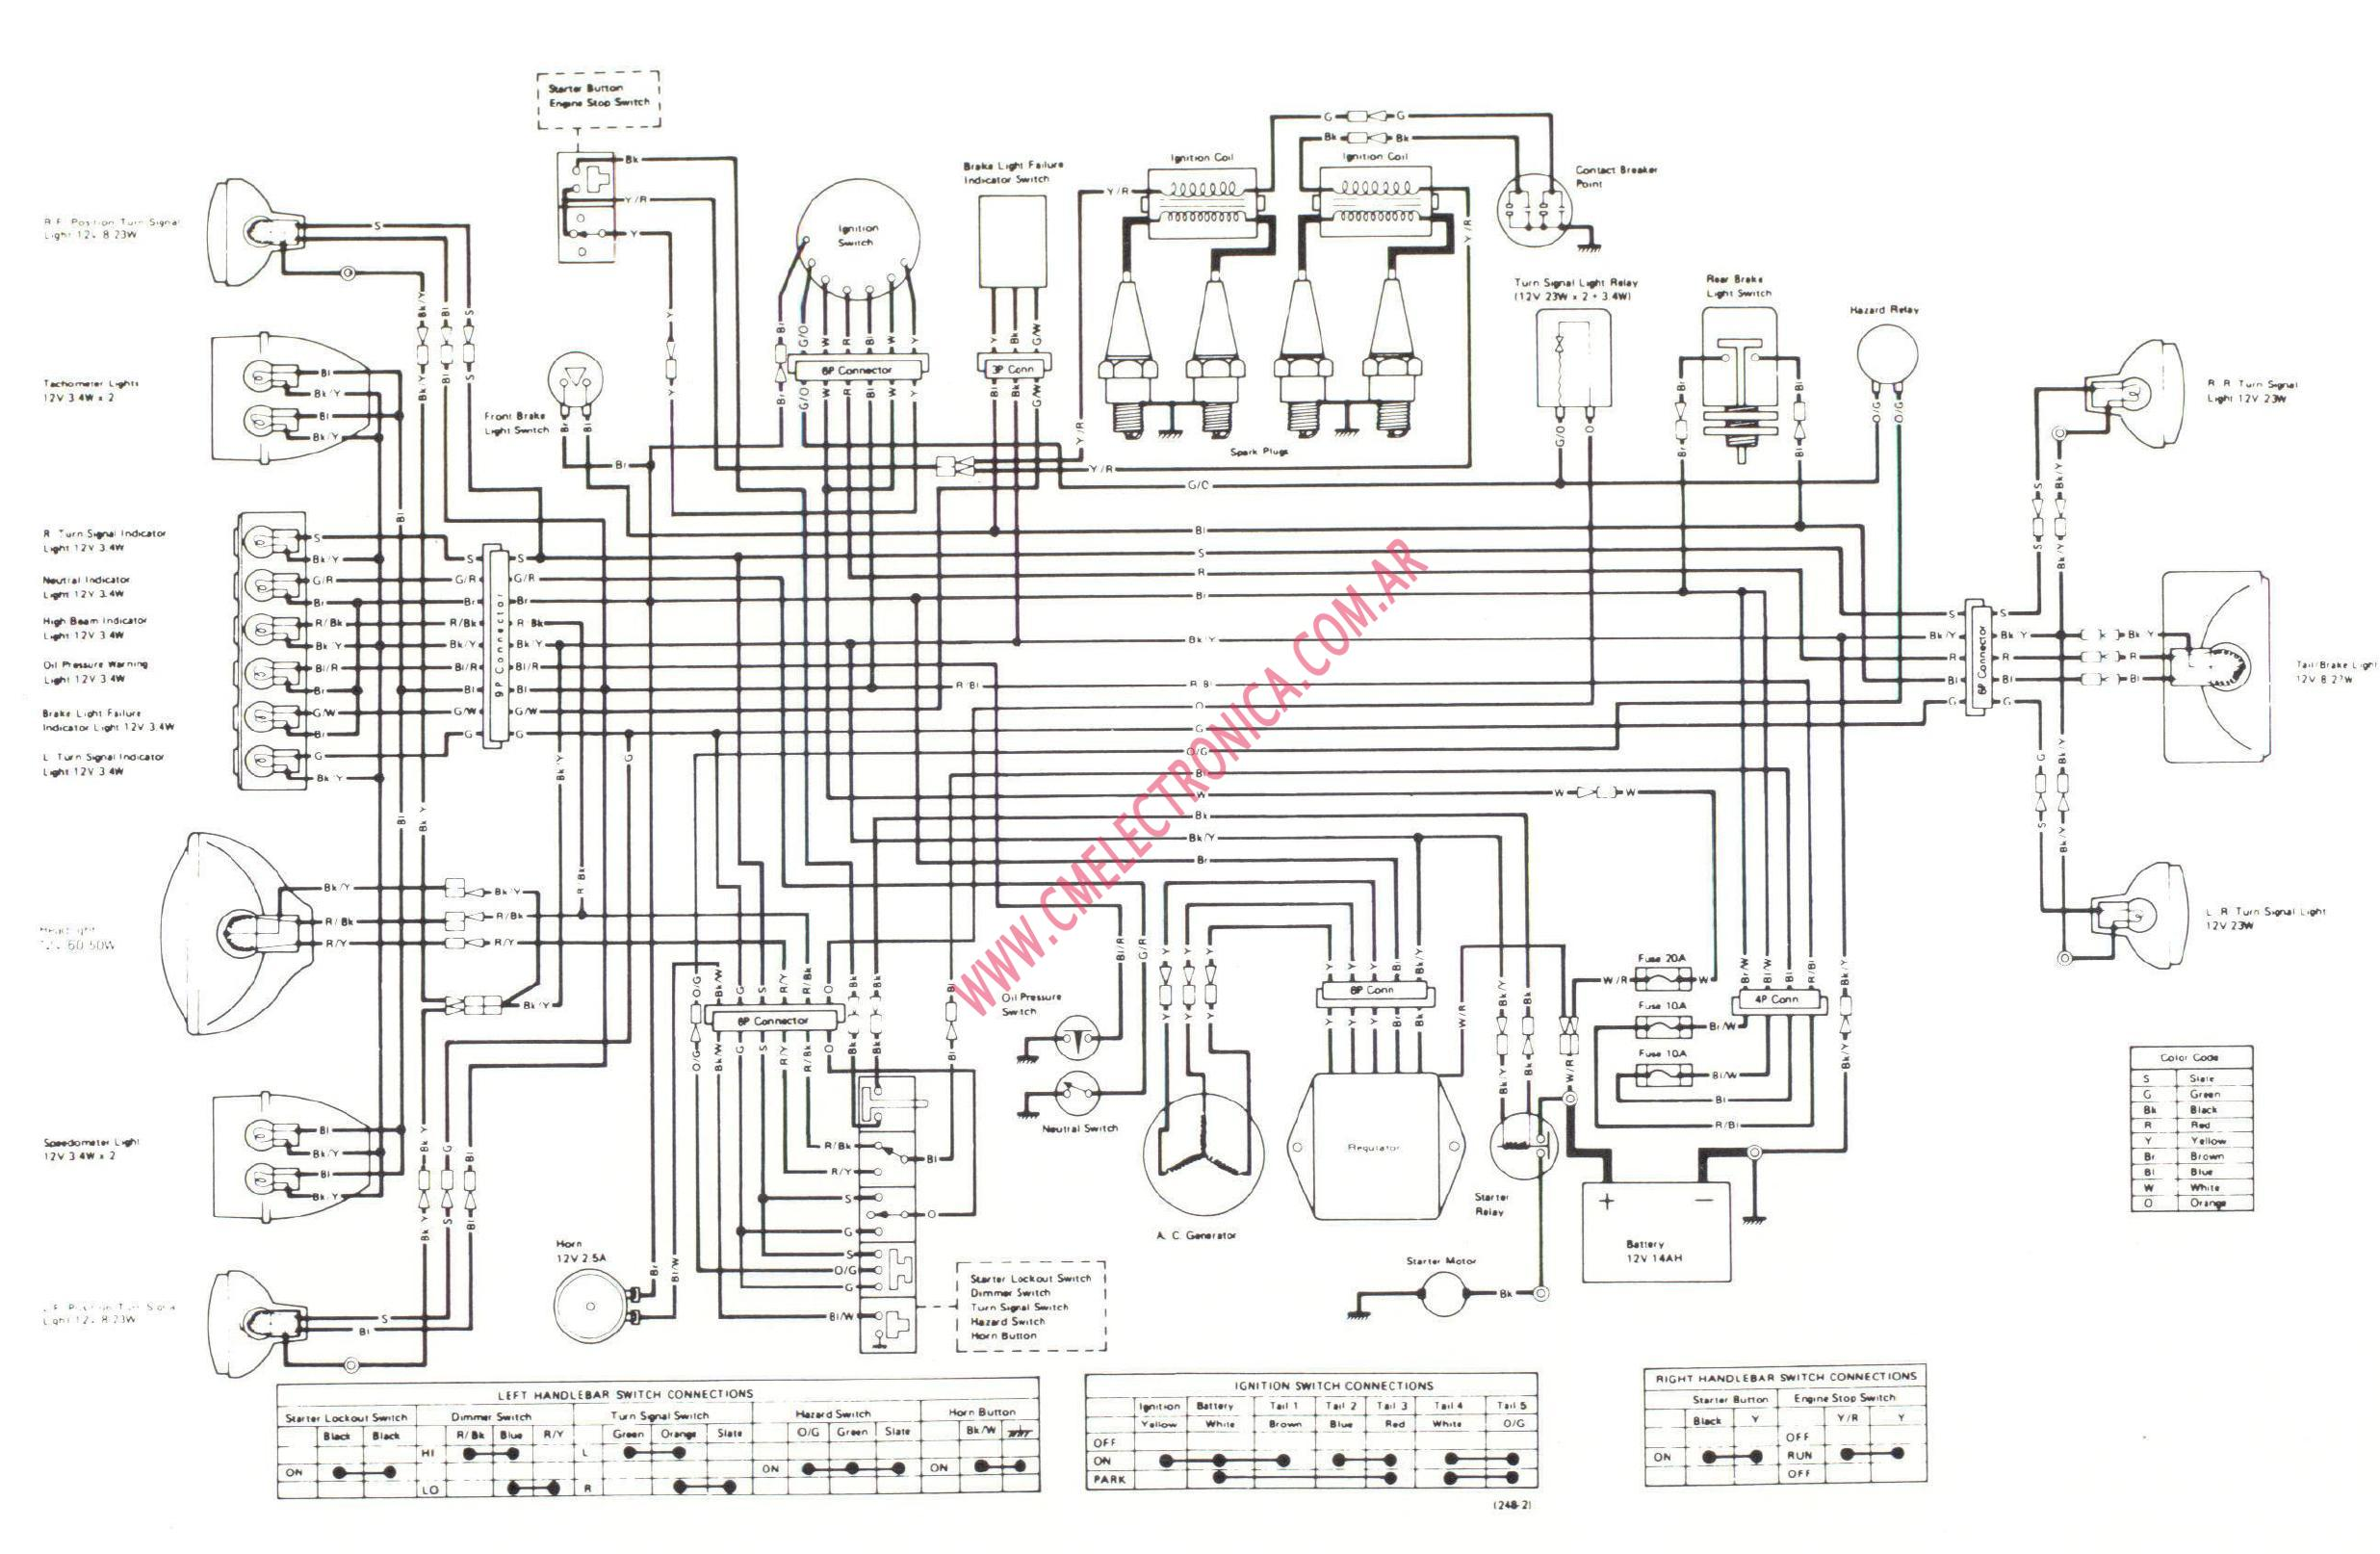 Ninja 250 Wiring Diagram 24 Images Ex500 Kawasaki Kz1000 1979 Police 250r At